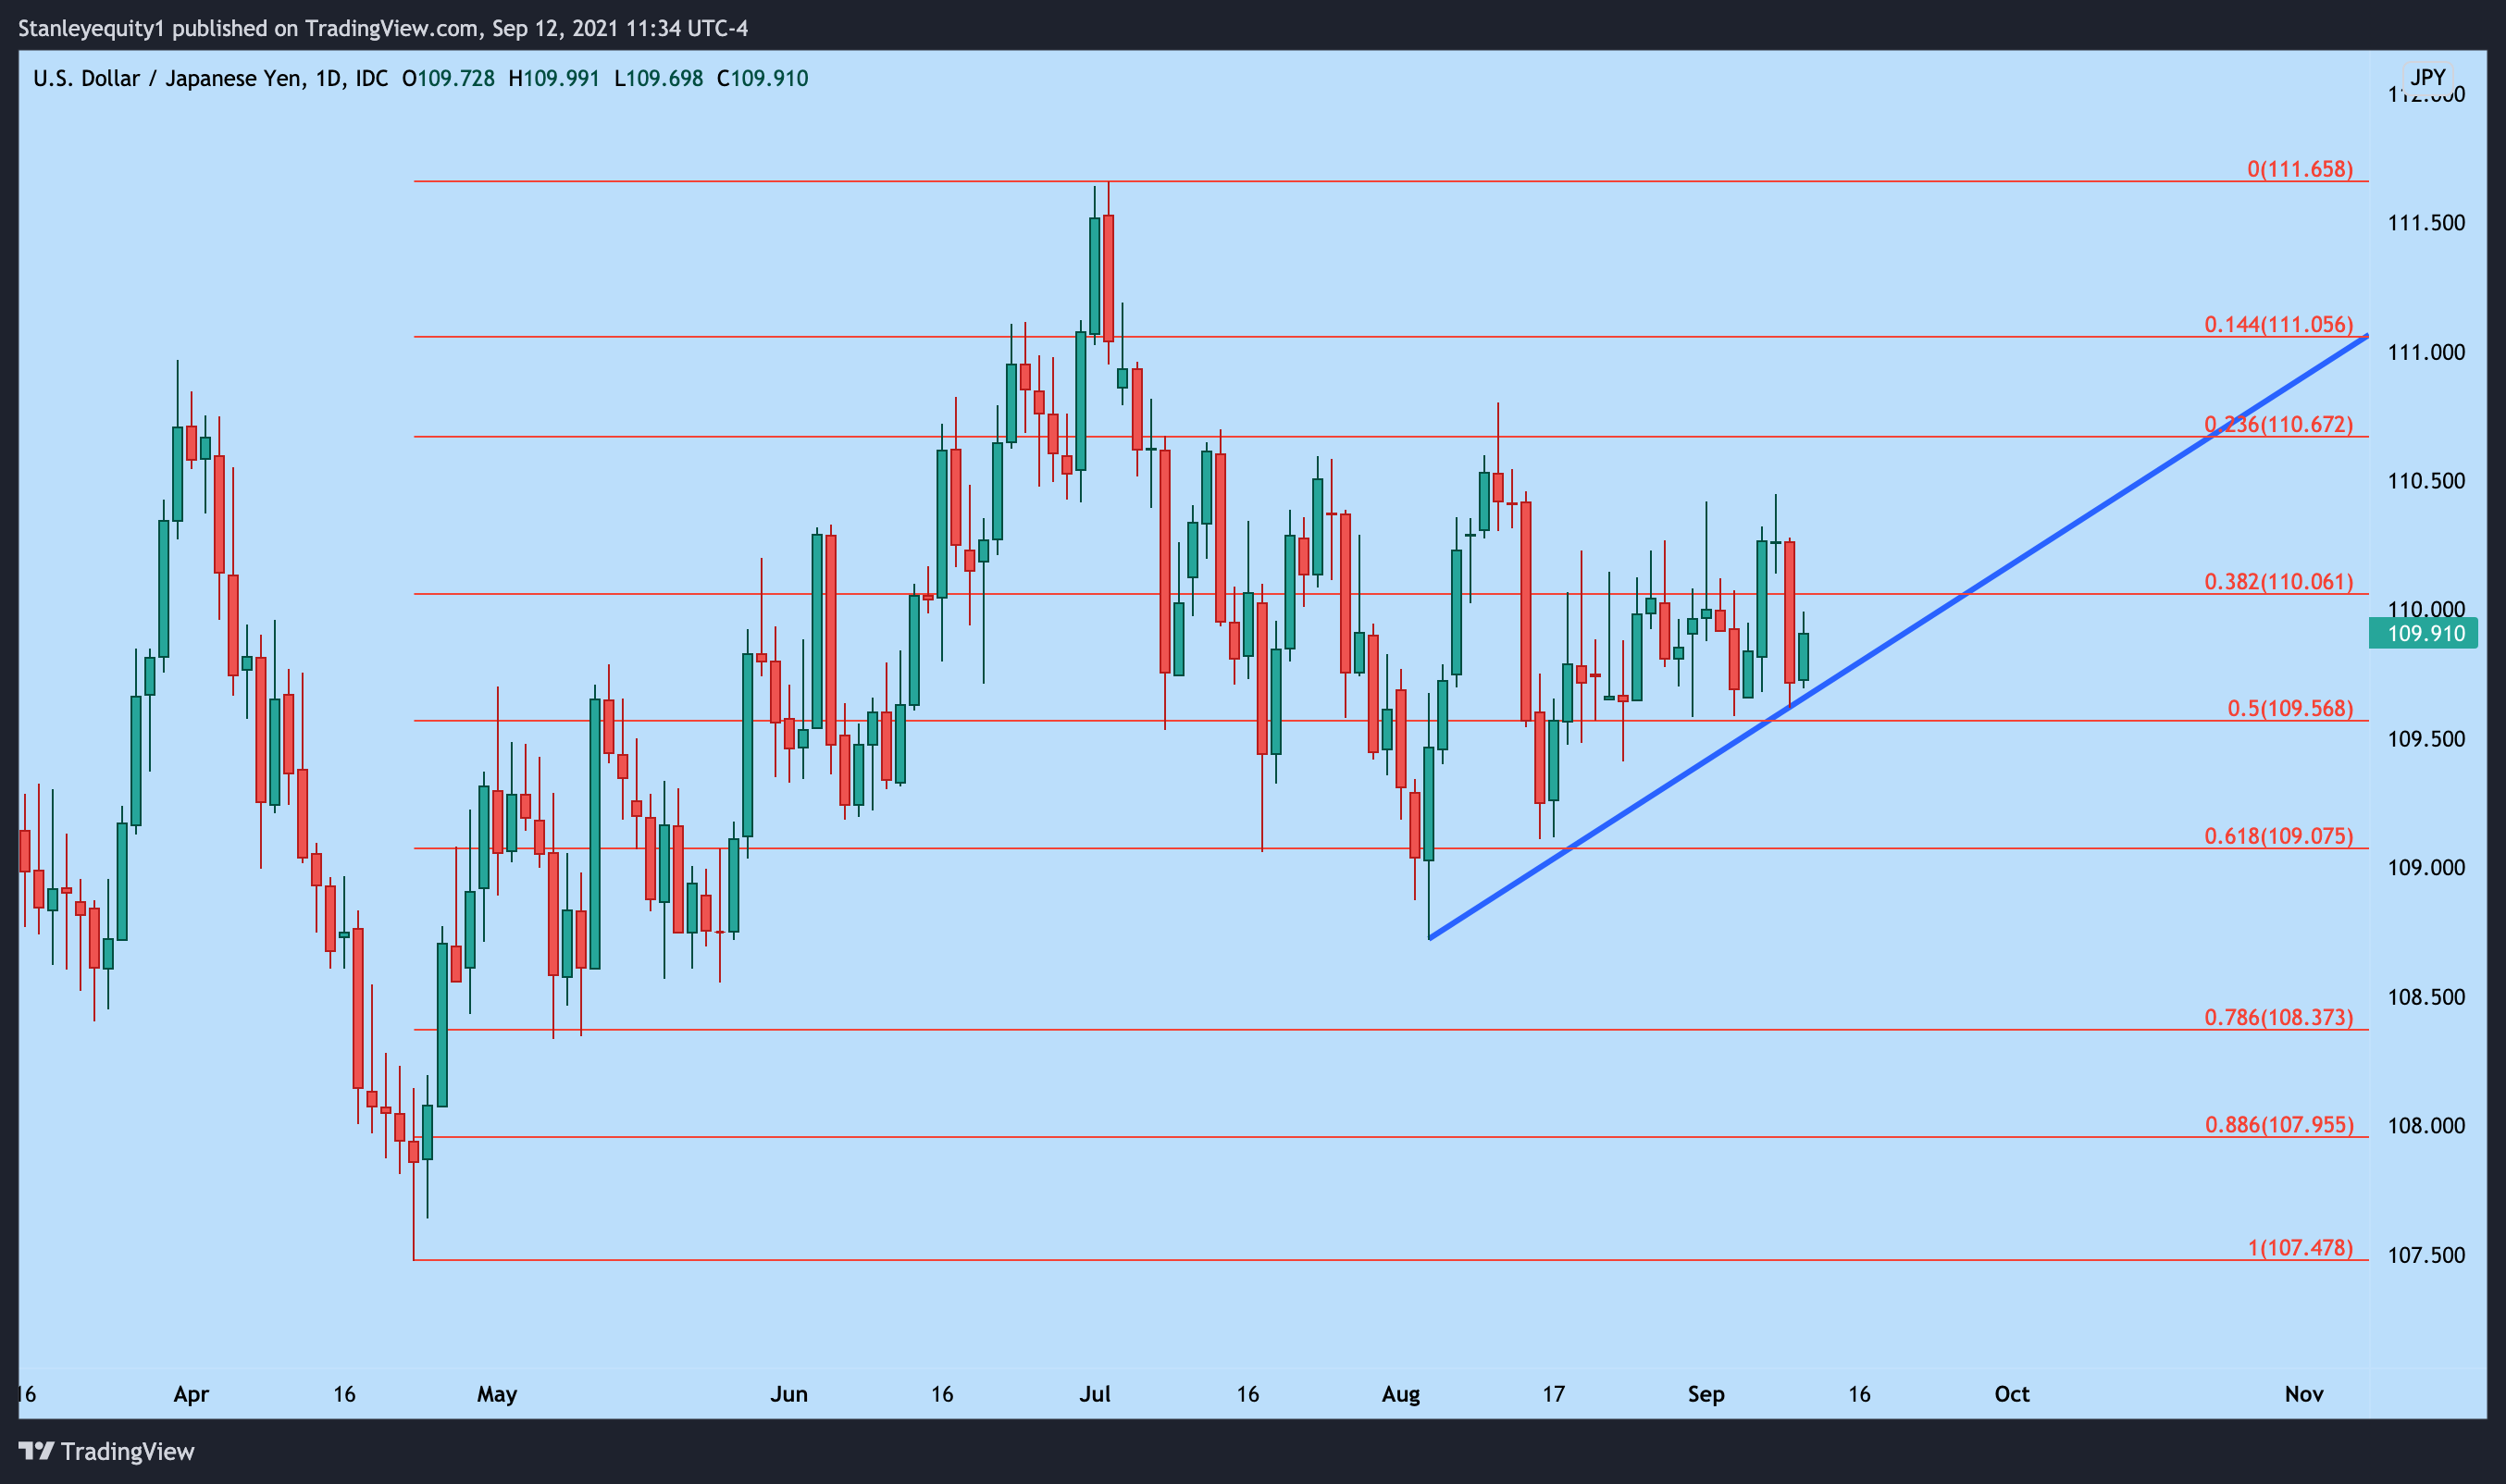 USD/JPY Daily Price Chart